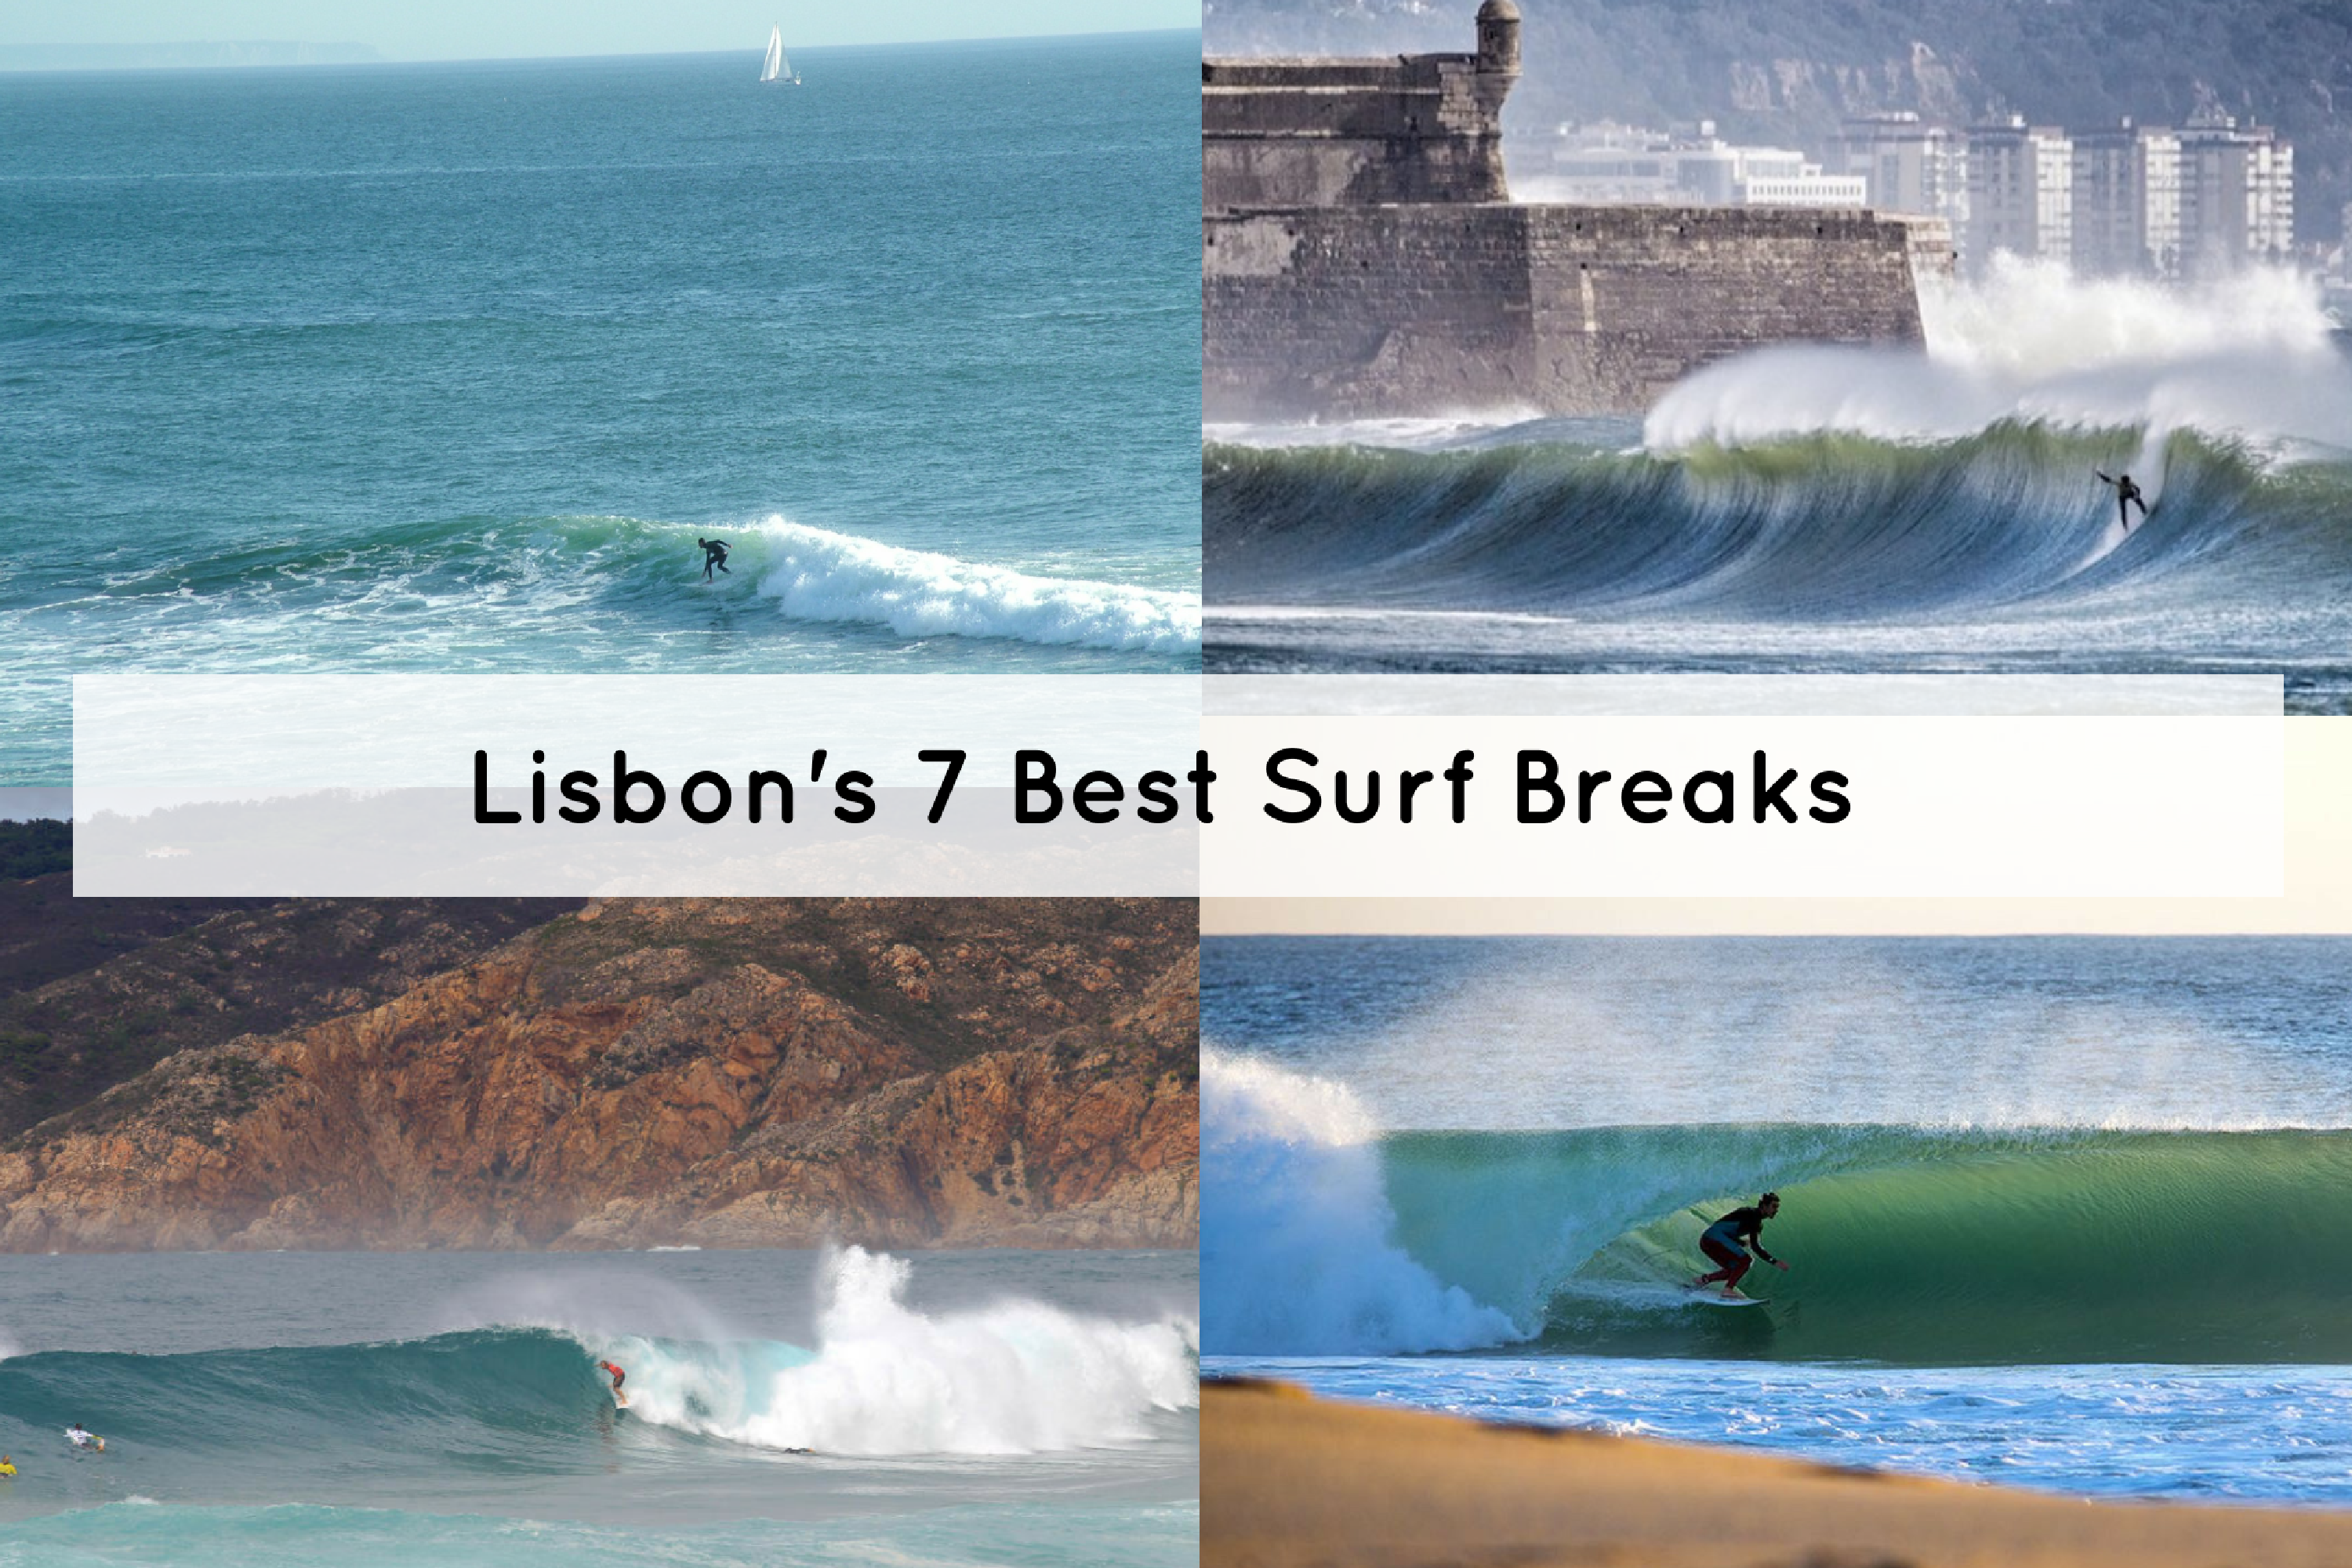 The Top 7 Surf Spots in Lisbon